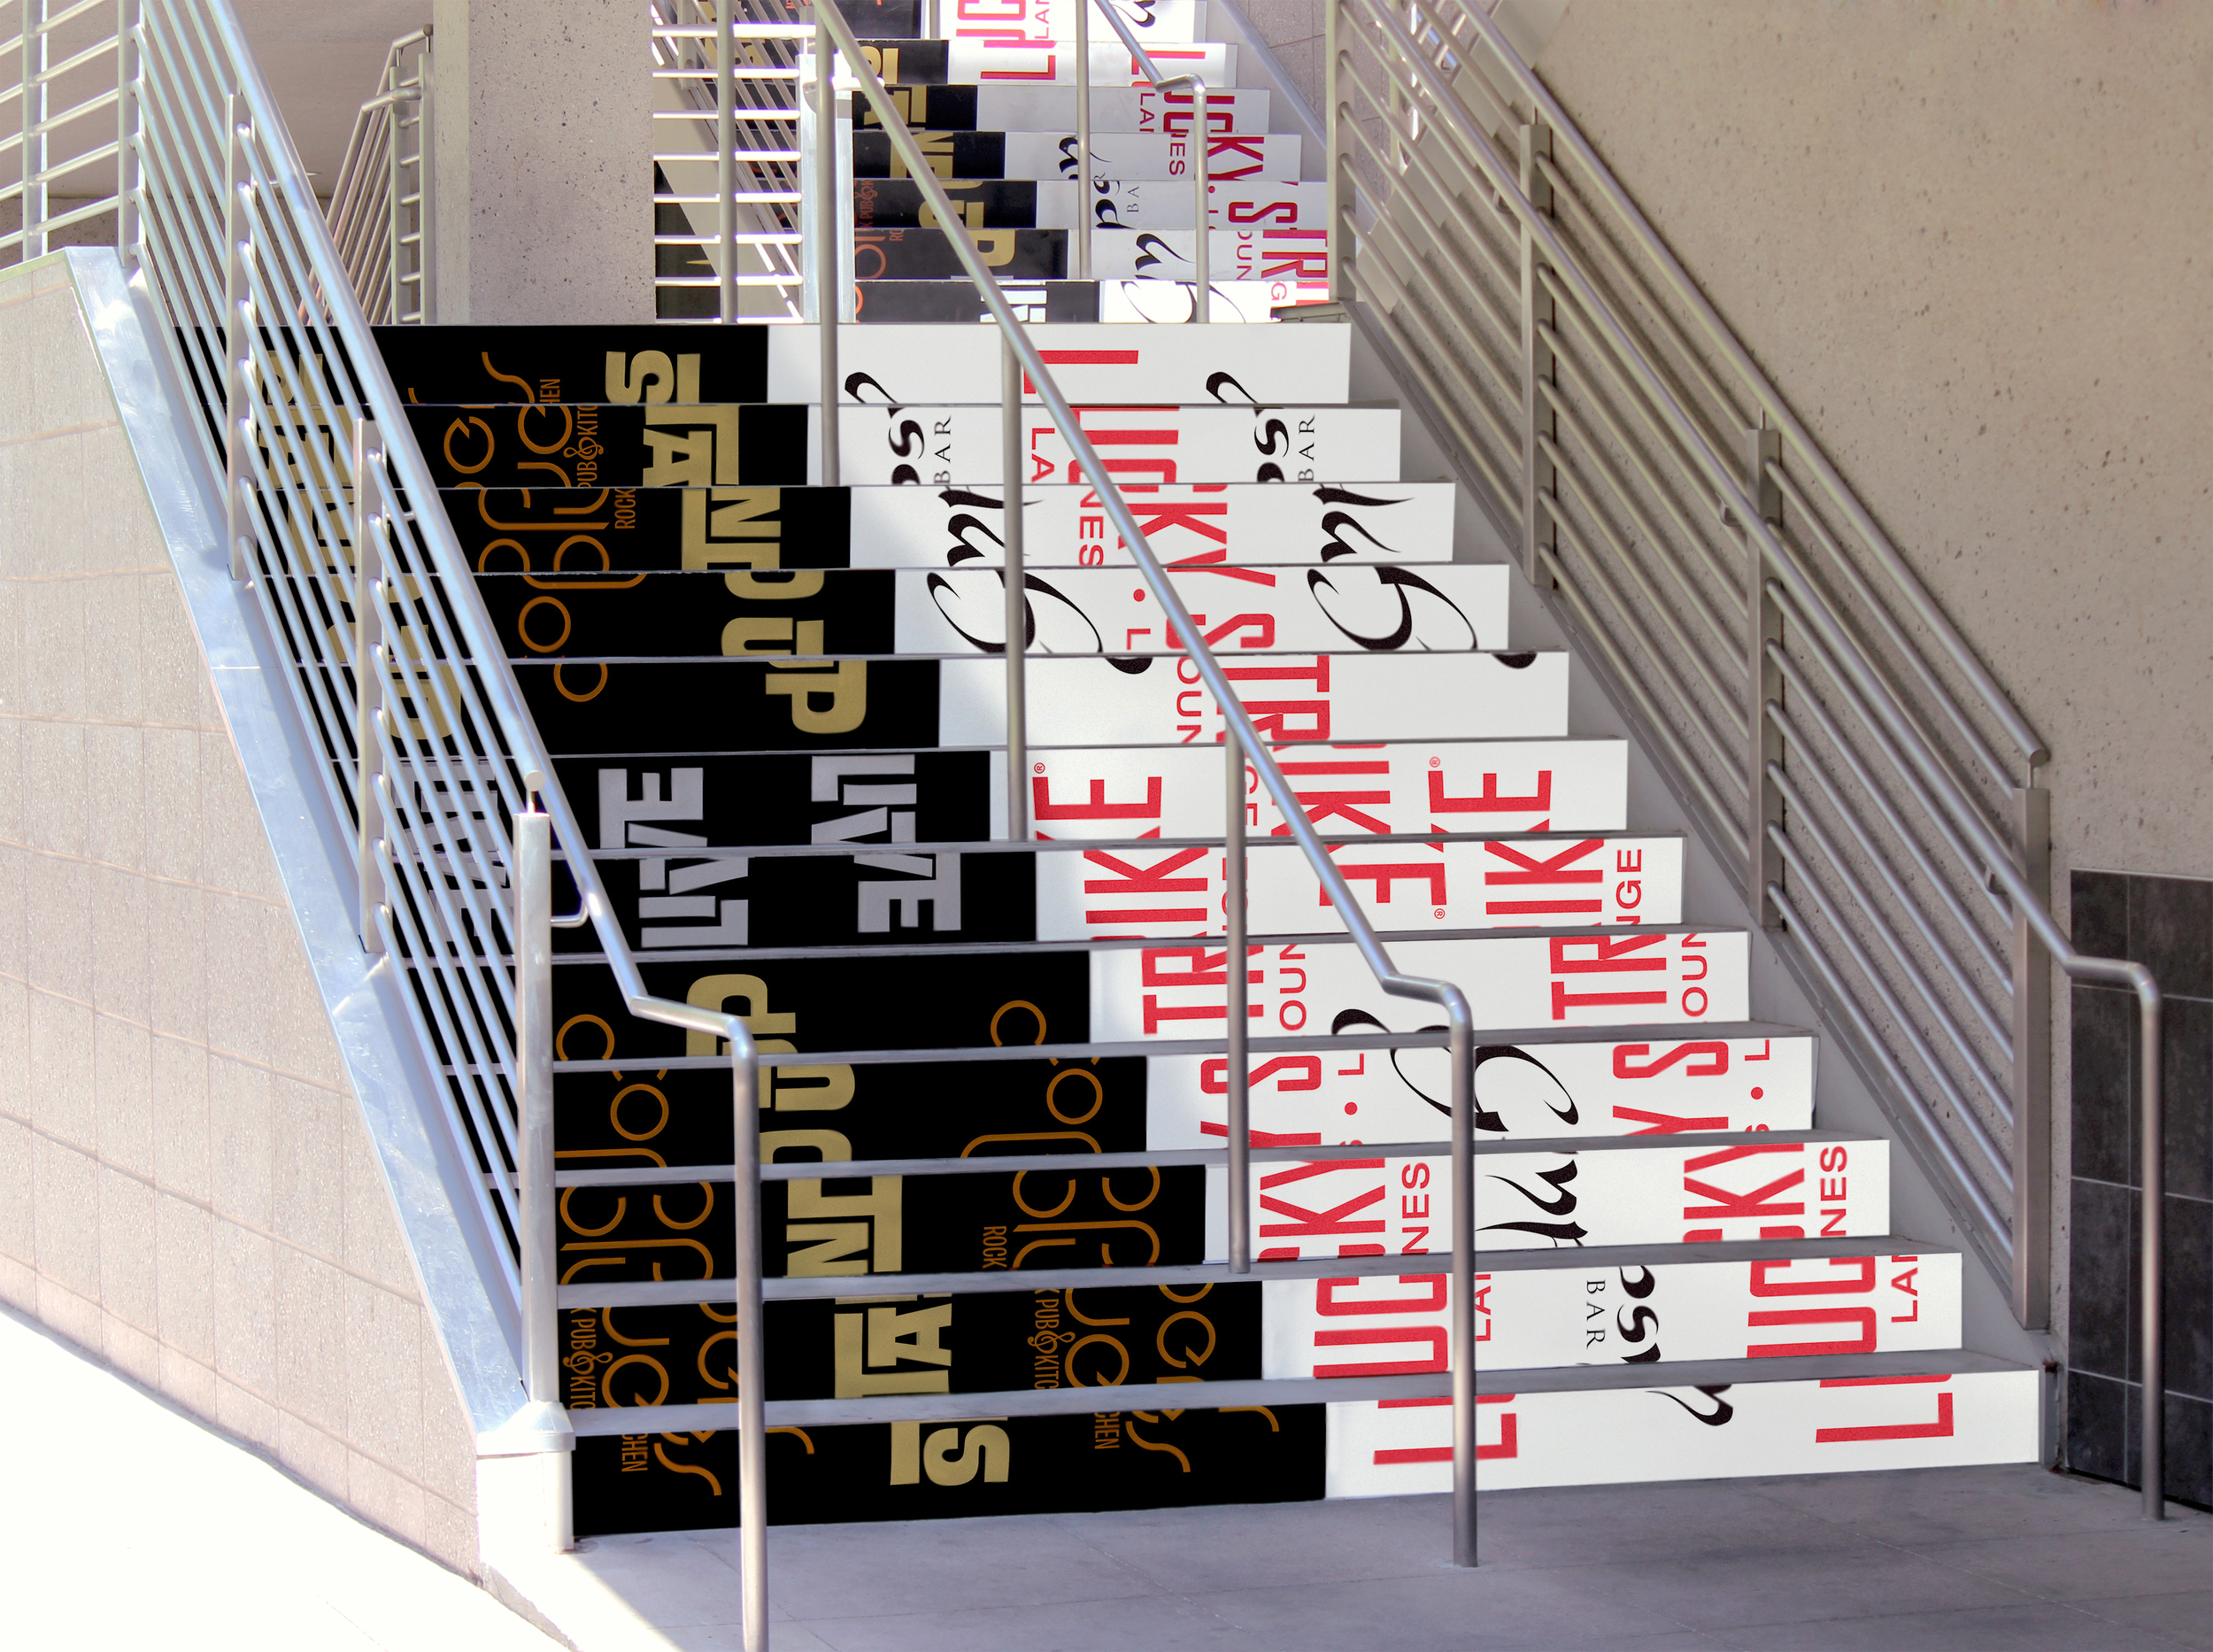 Digitally printed stair graphics welcome patrons to the second floor restaurants and clubs.